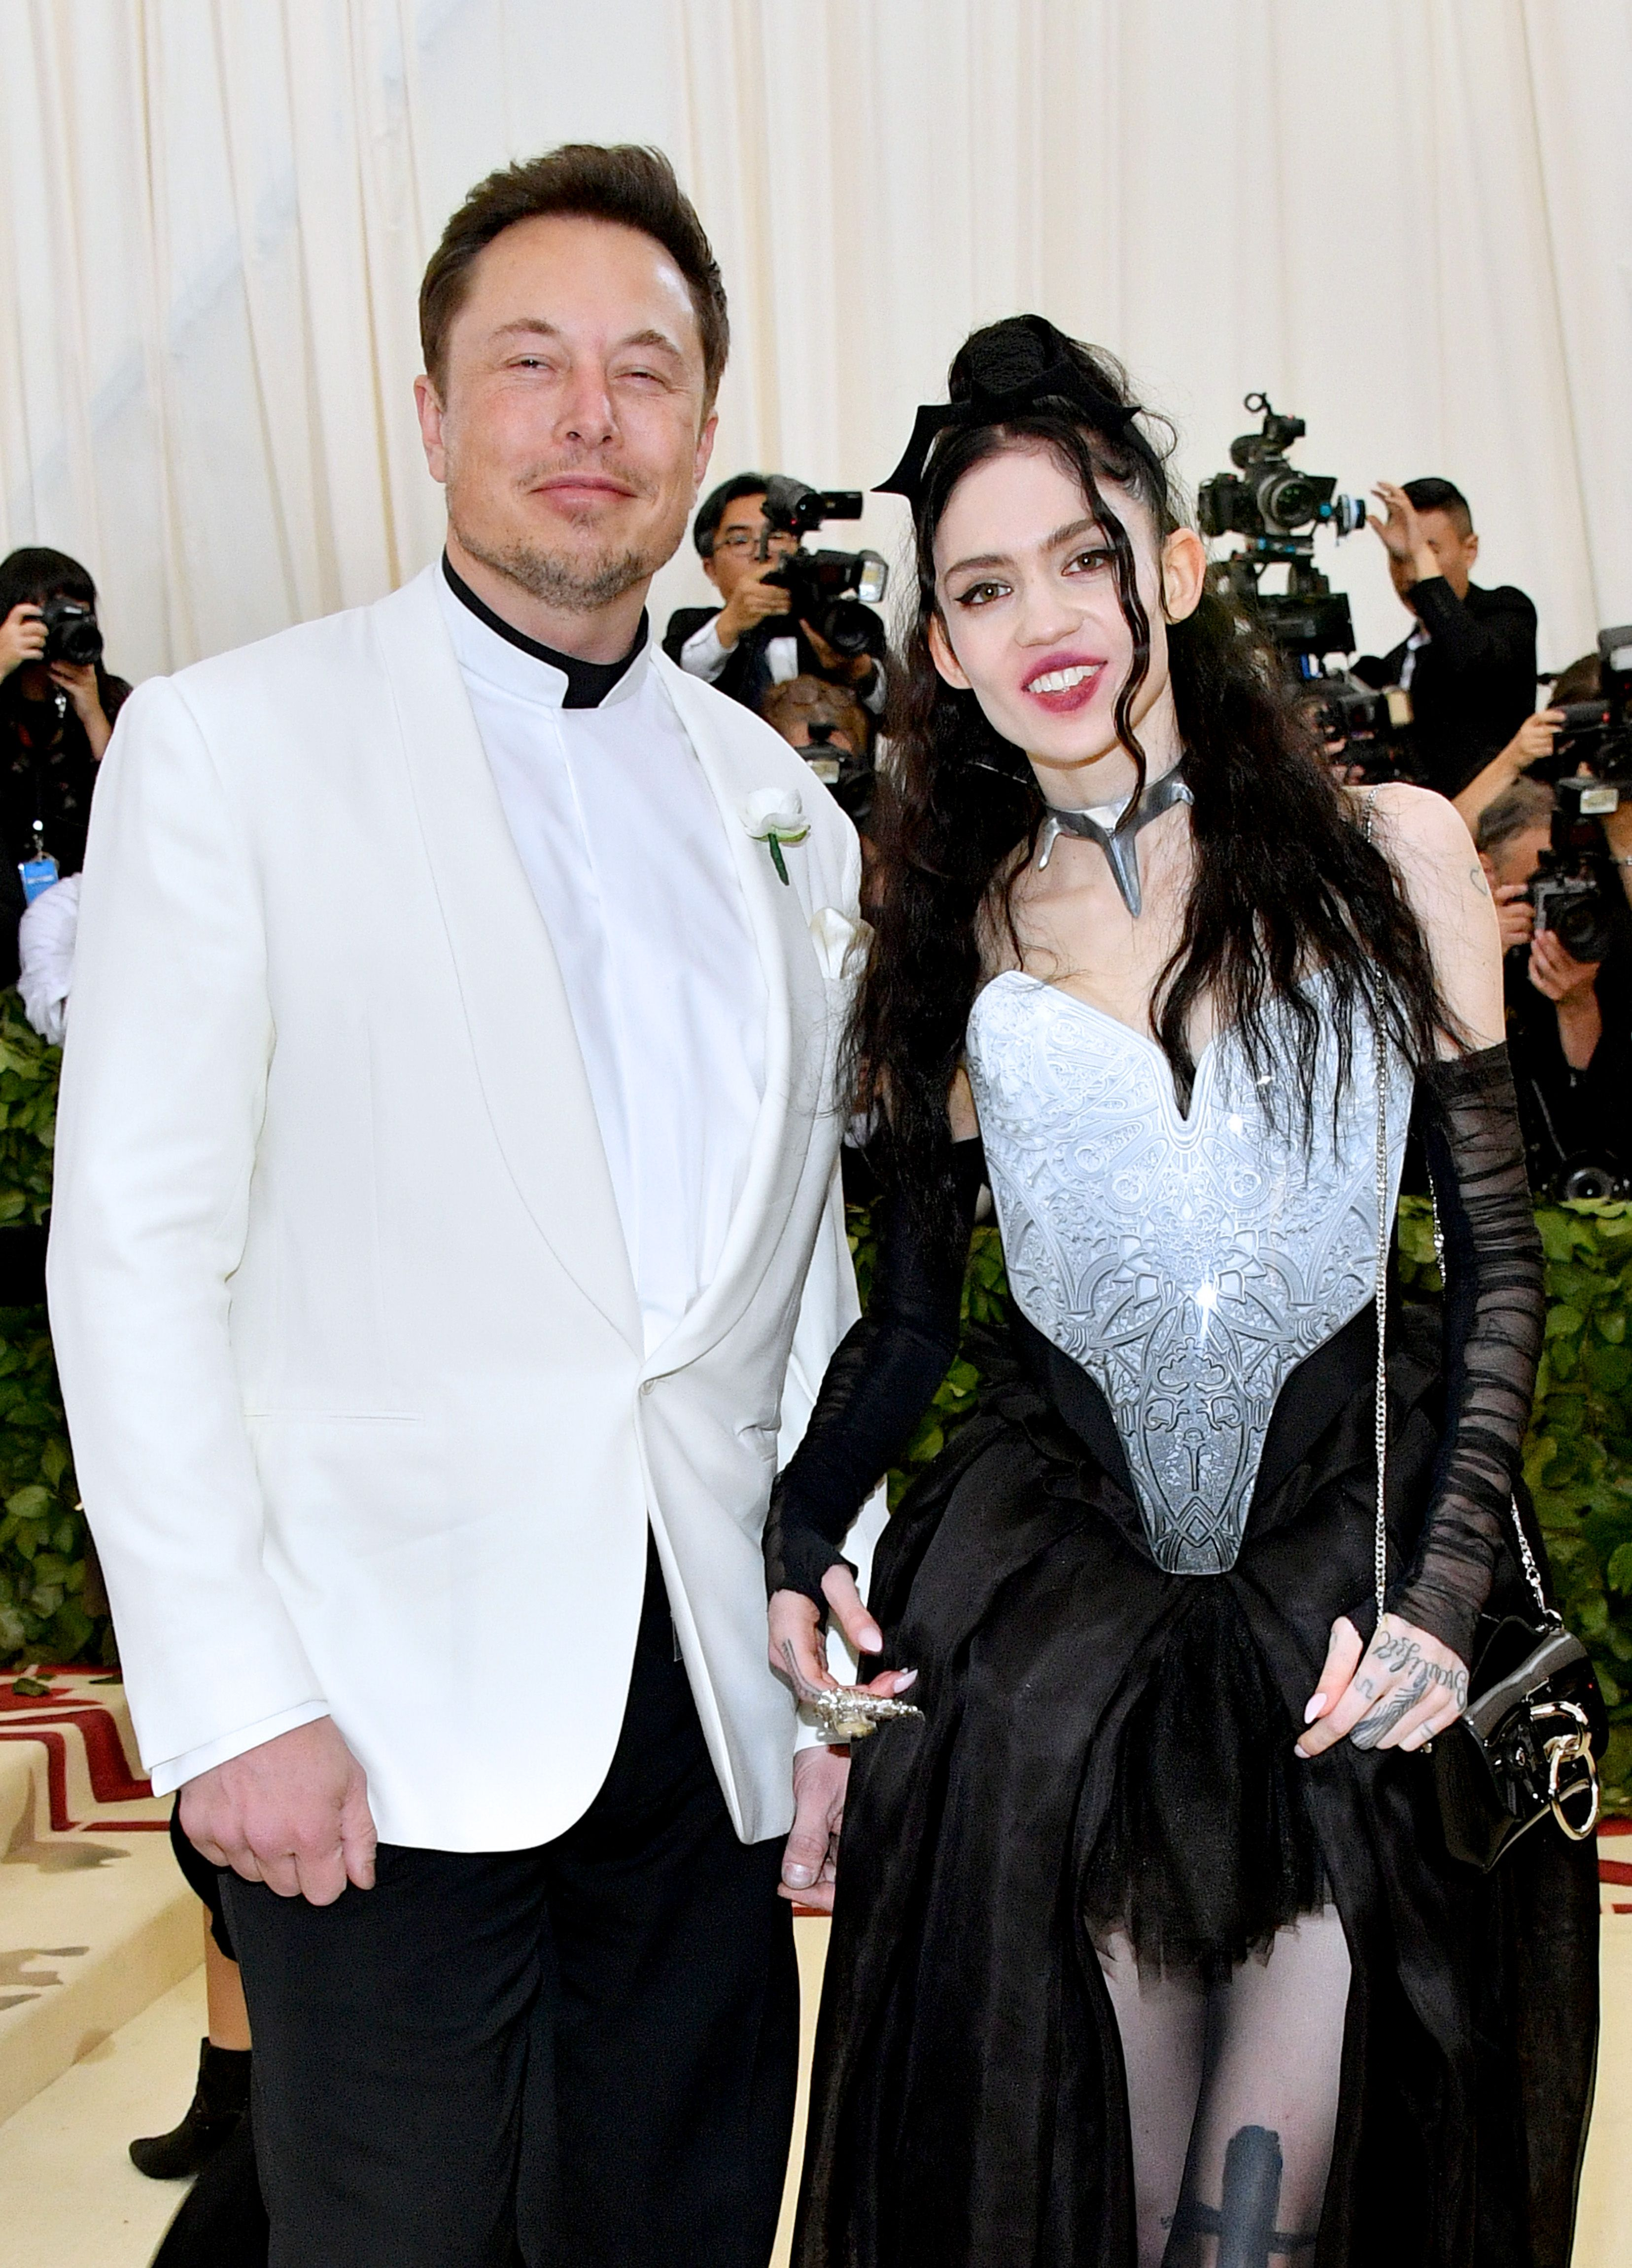 Grimes Confrims Elon Musk Is The Father Of Her Child In Rolling Stone Interview